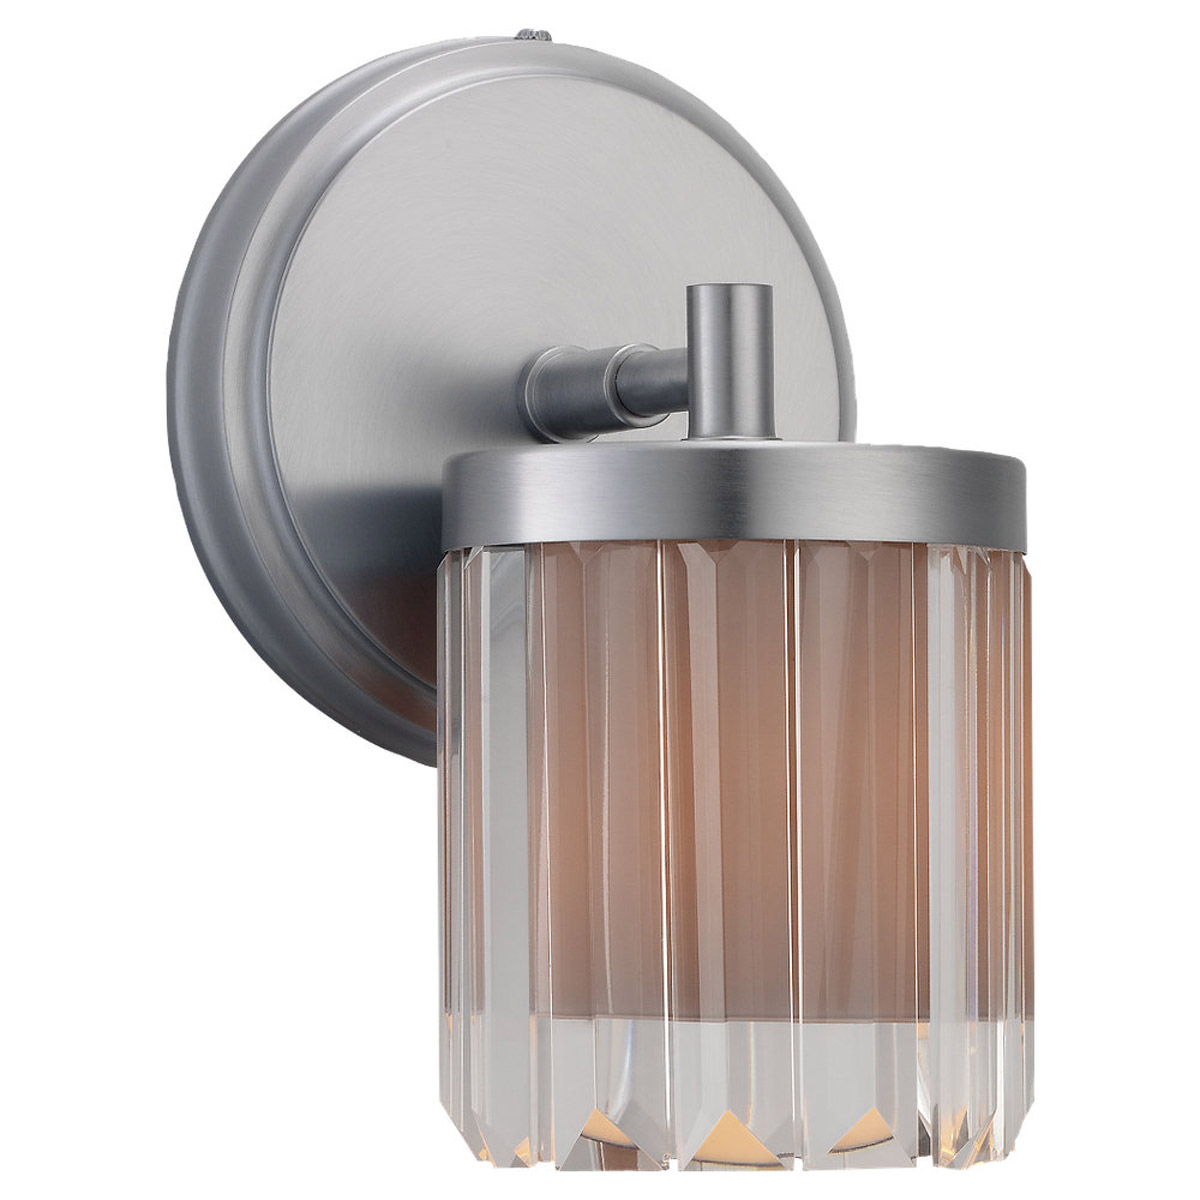 Sea Gull Lighting Nuit Noir Crystal 1 Light Wall / Bath / Vanity in Brushed Chrome 44690-863 photo